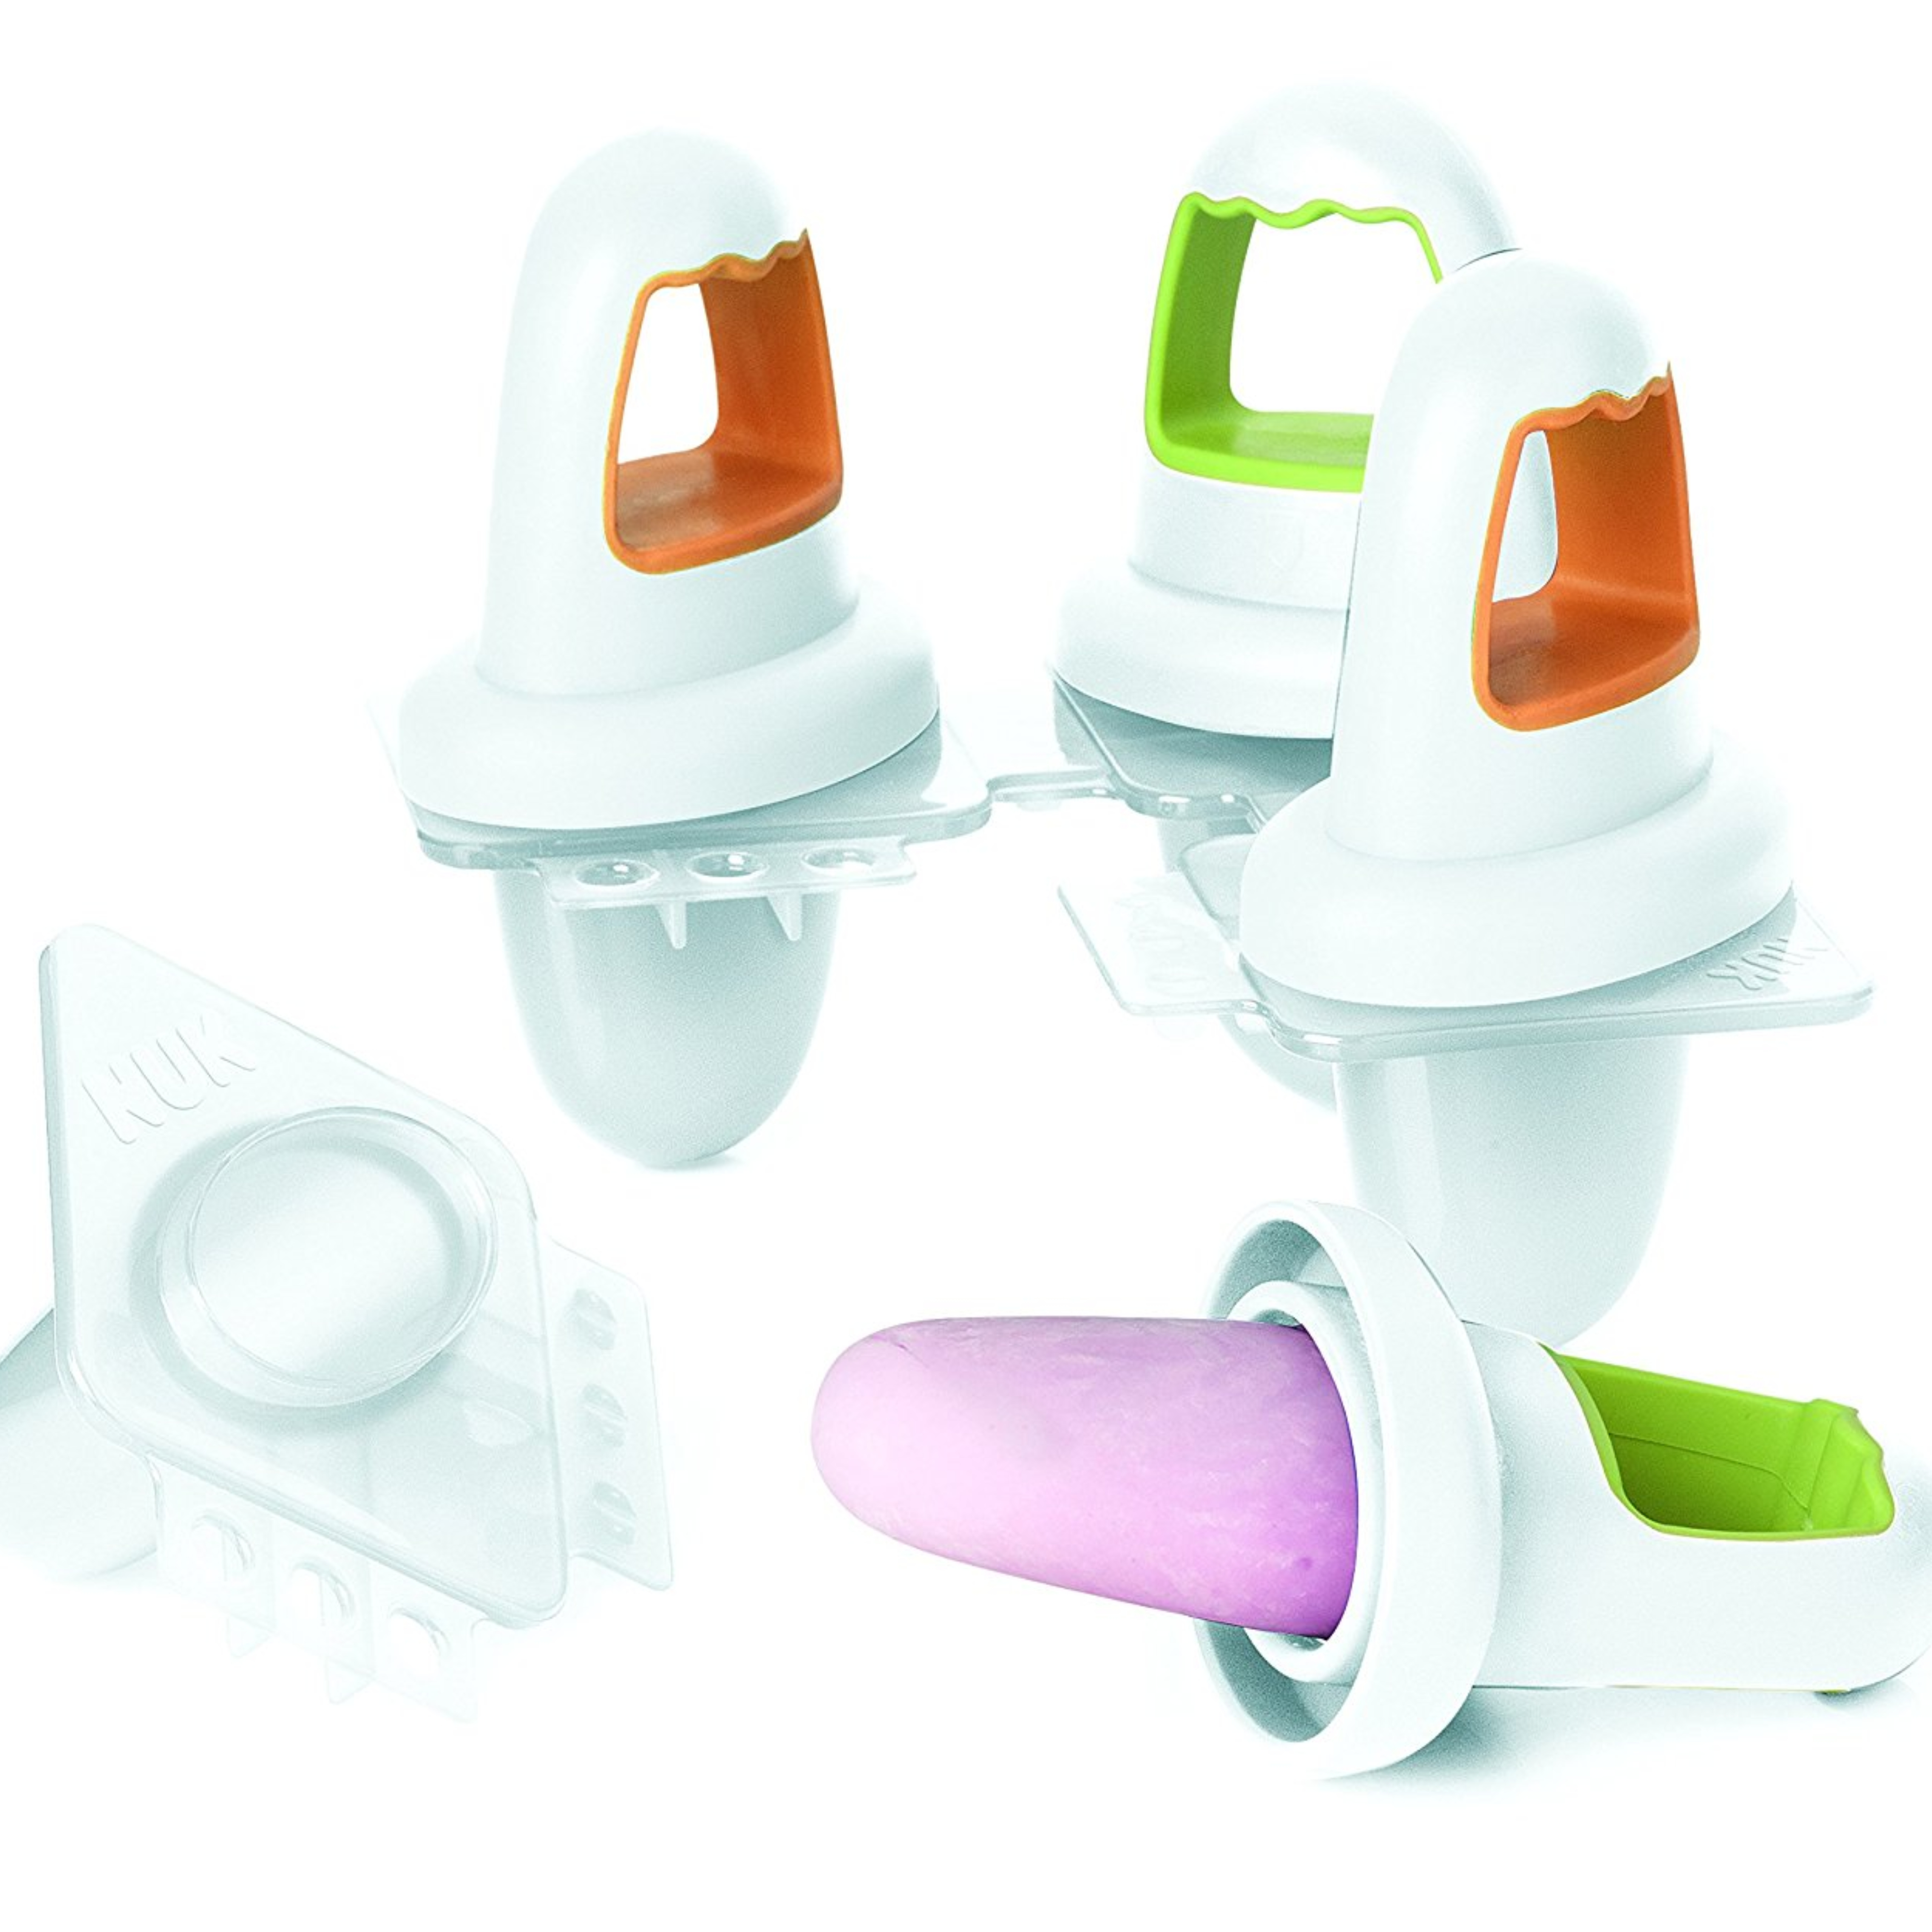 Annabel Karmel Mini Ice Lolly Moulds Set|Fruit Lollies|Baby Feeding Accessory|